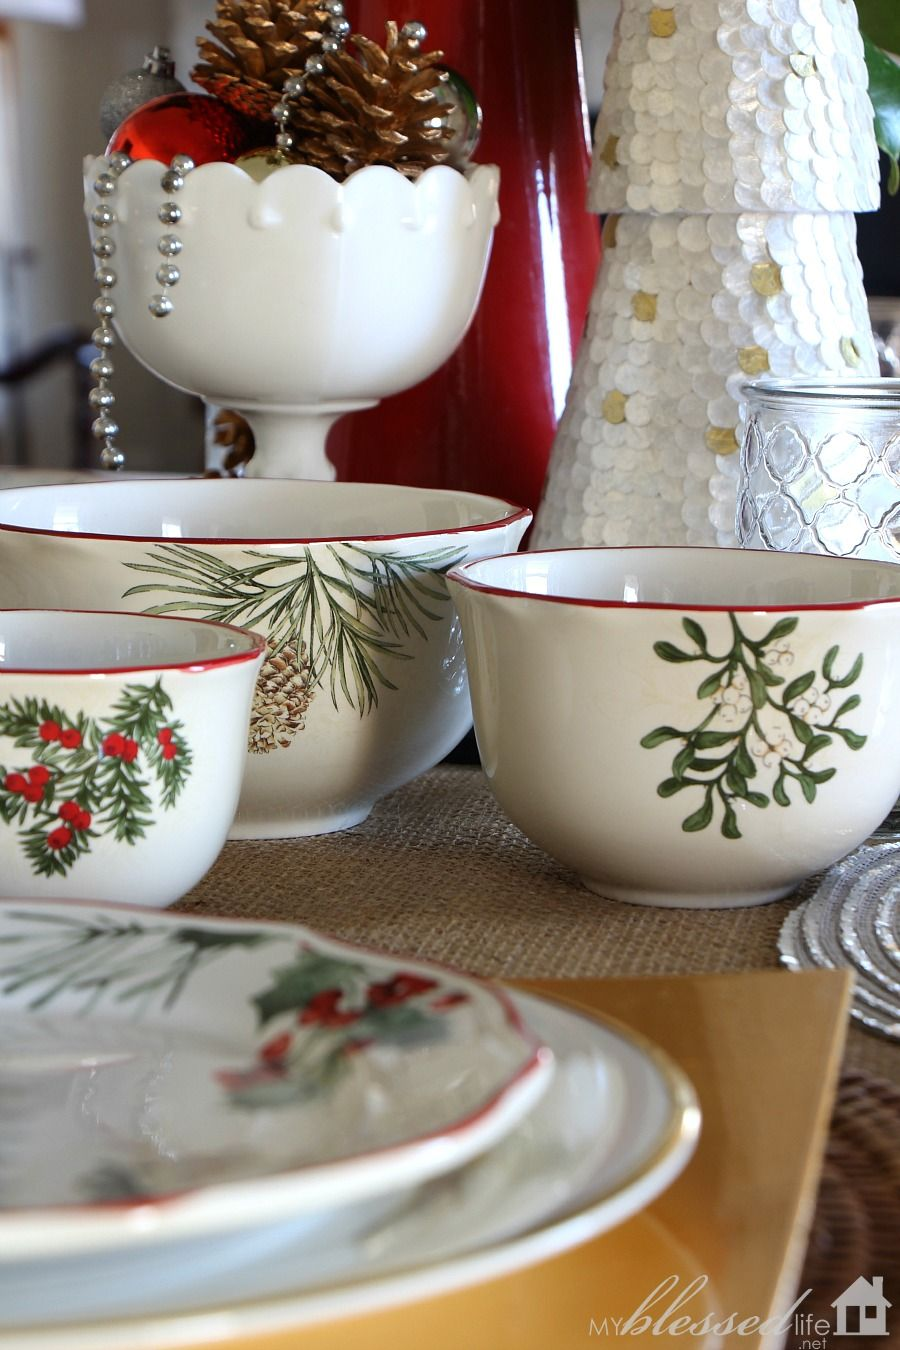 The Heritage Dinnerware Collection From Better Homes And Gardens Makes A Wonderful Simple